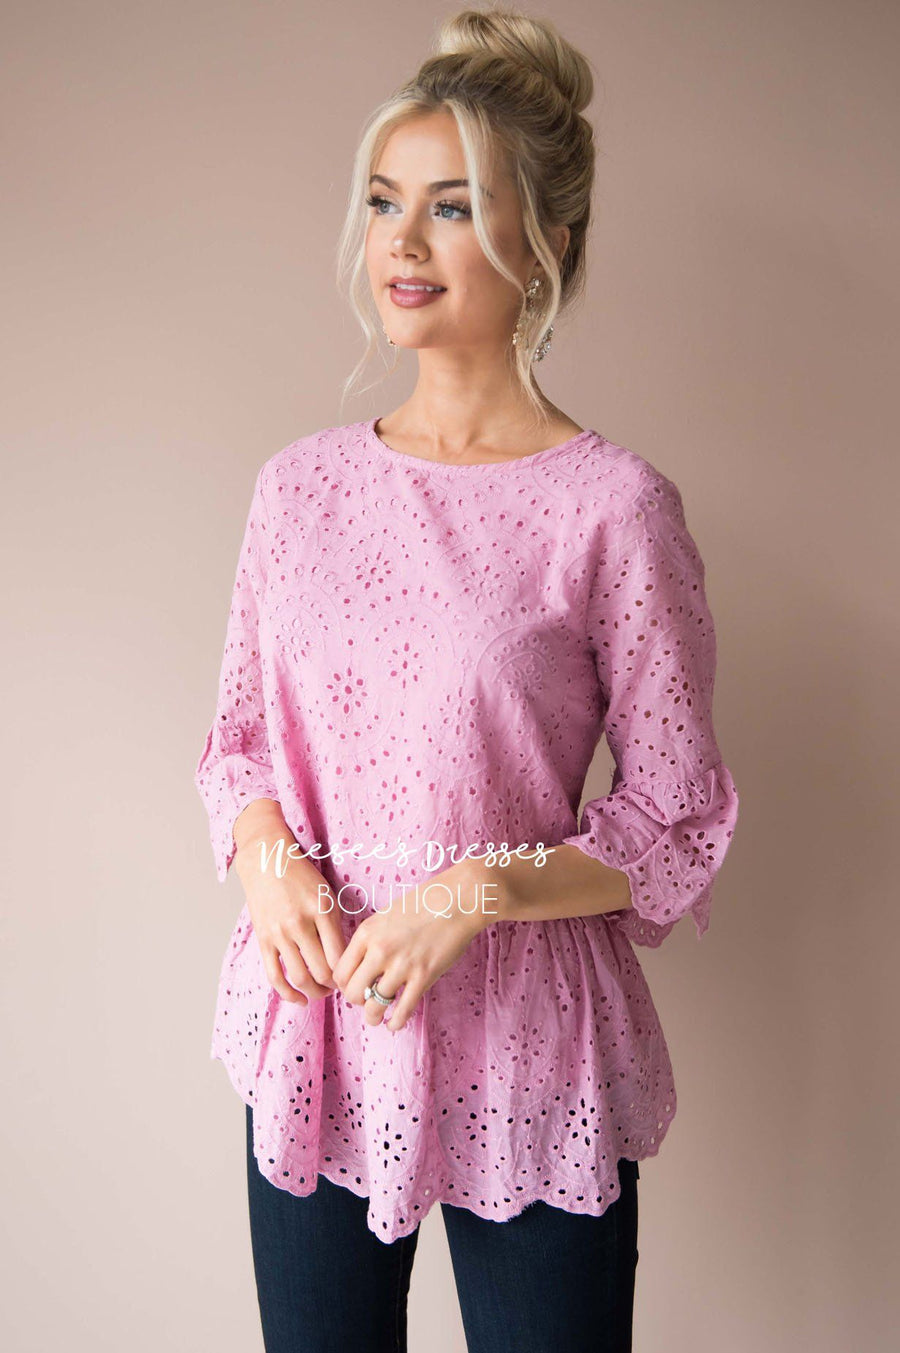 Spread The Love Scalloped Hem Eyelet Top